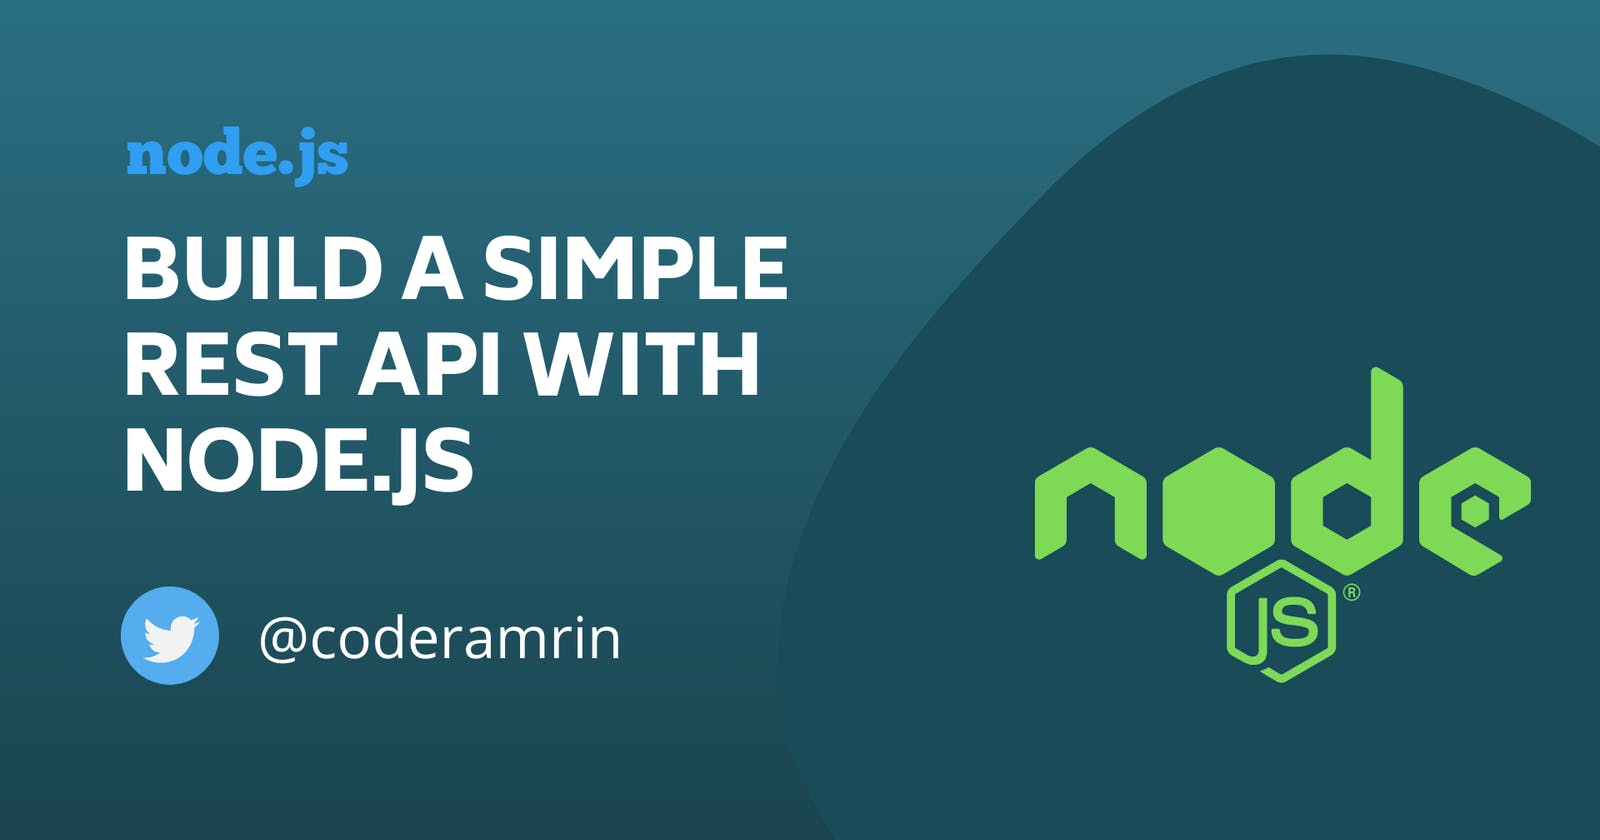 Let's build a simple REST API with Node.js and Express